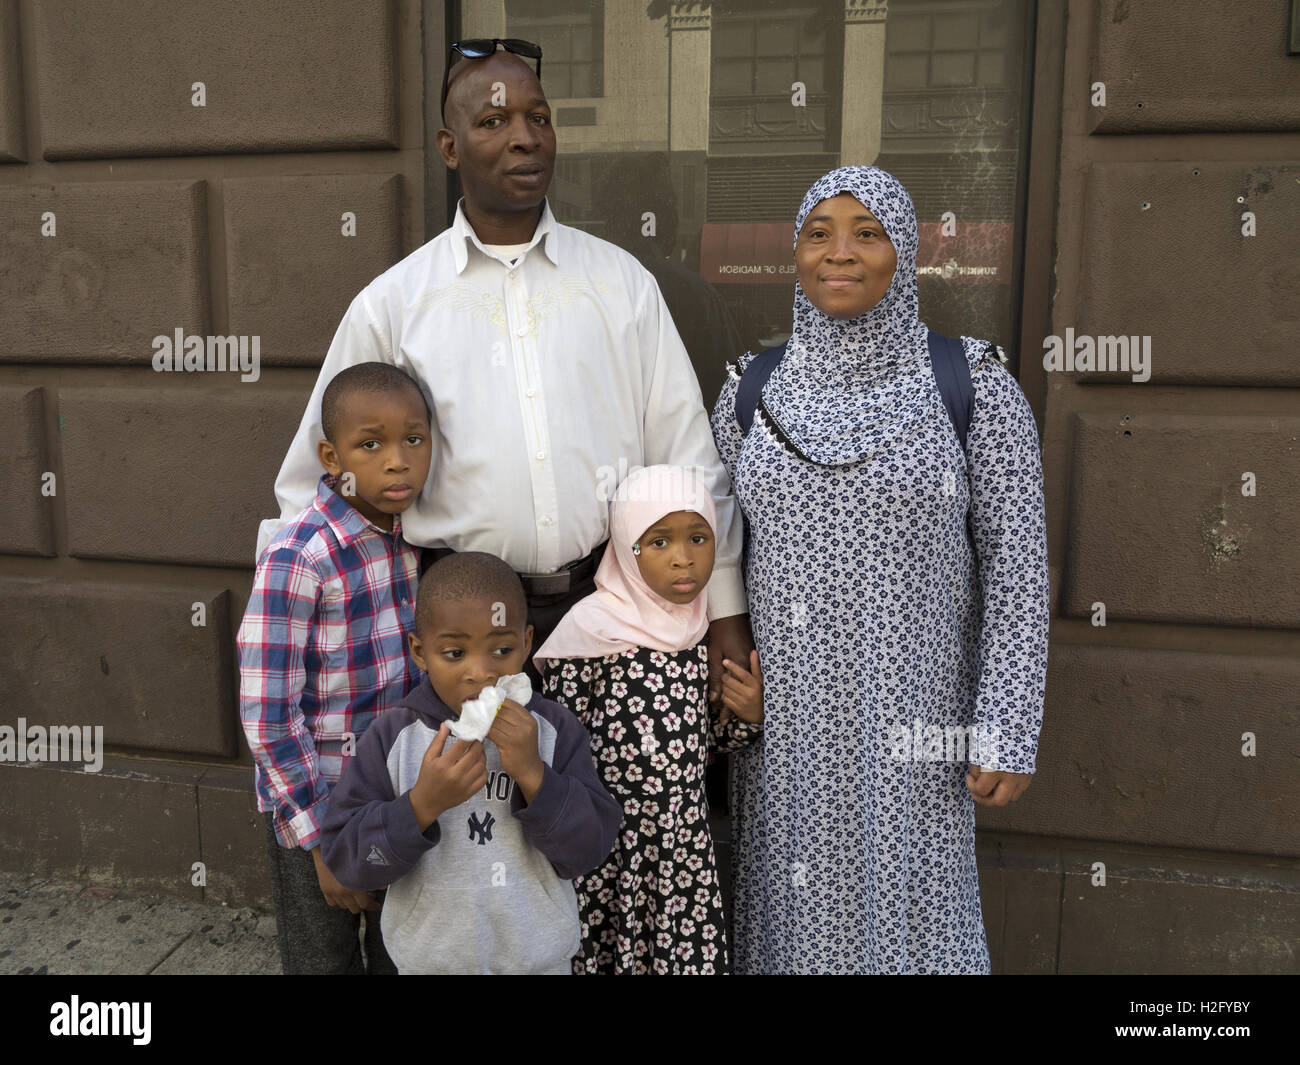 Family from Ivory Coast at American Muslim Day Parade in New York City, 2016. - Stock Image